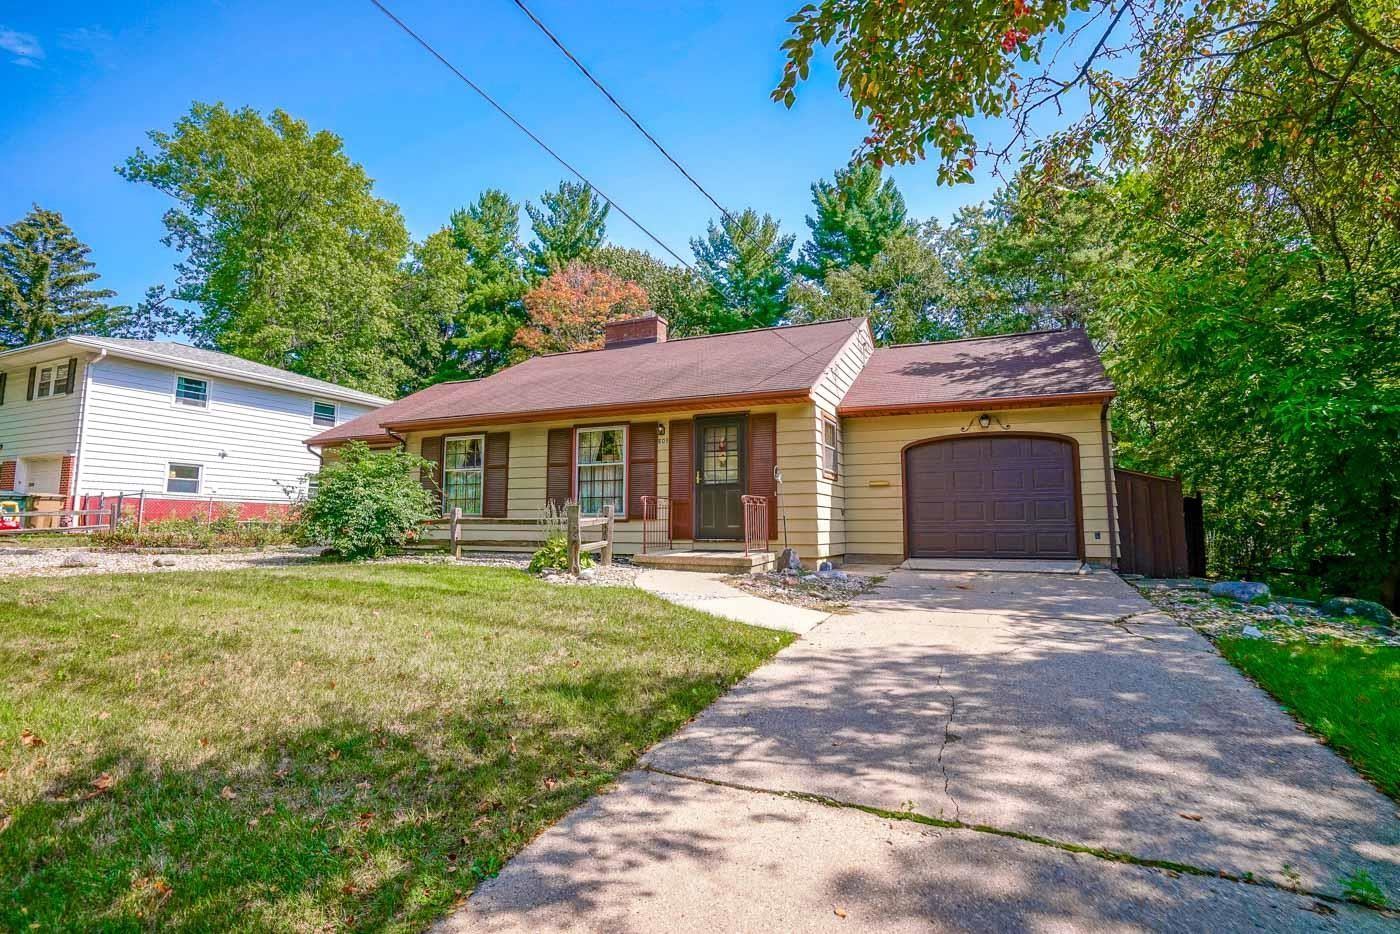 Photo for 605 Orchard Dr, Madison, WI 53711-1322 (MLS # 1920196)